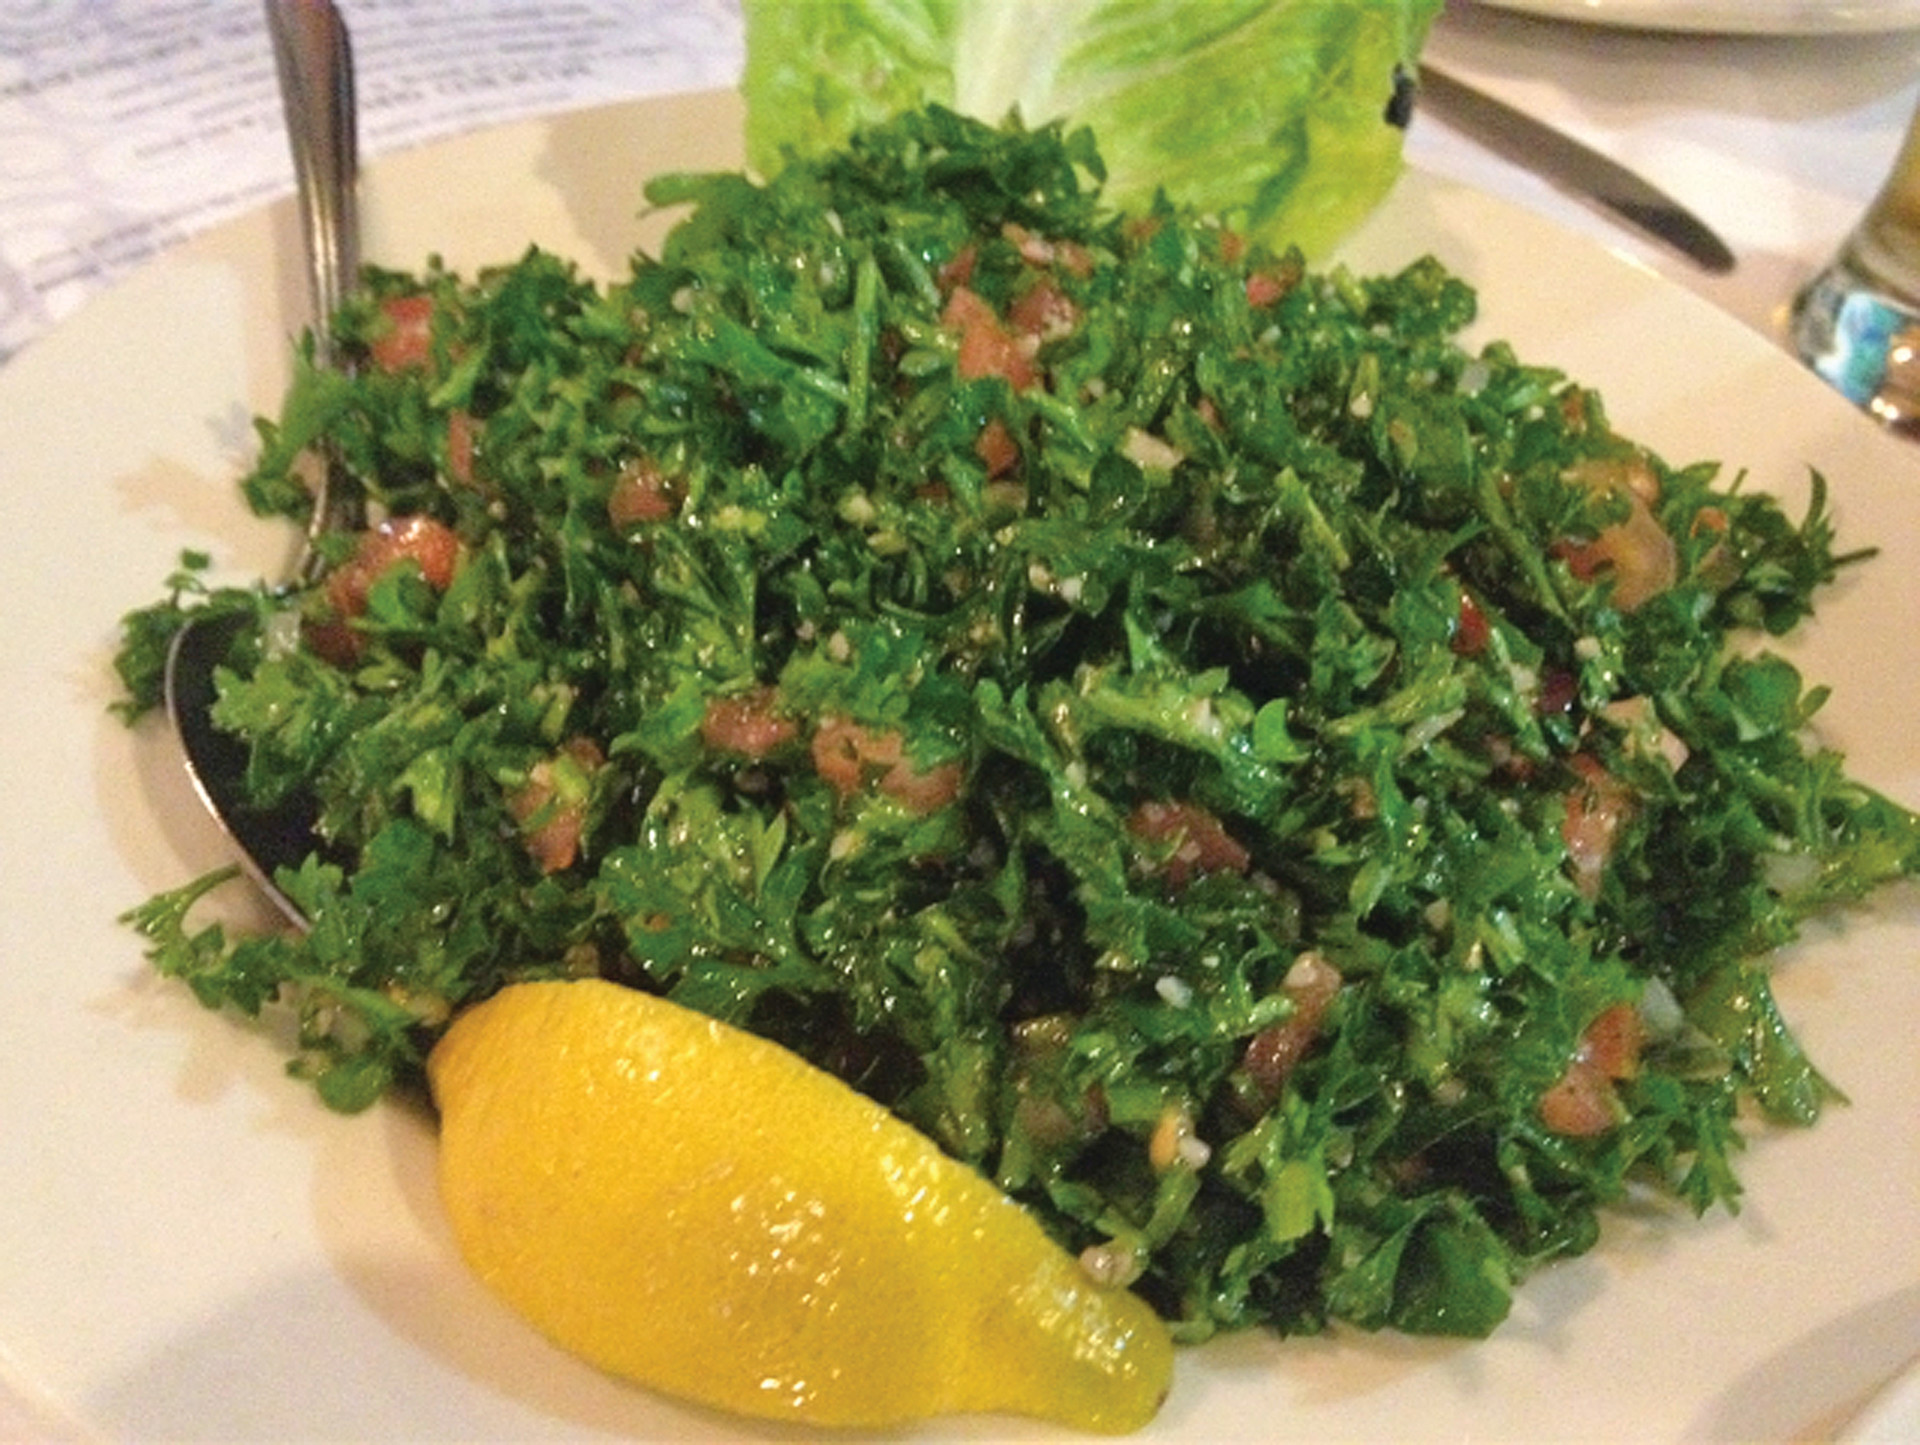 The fresh tabouli blends chopped parsley, diced tomato, onion, bulgur wheat, lemon and olive oil.